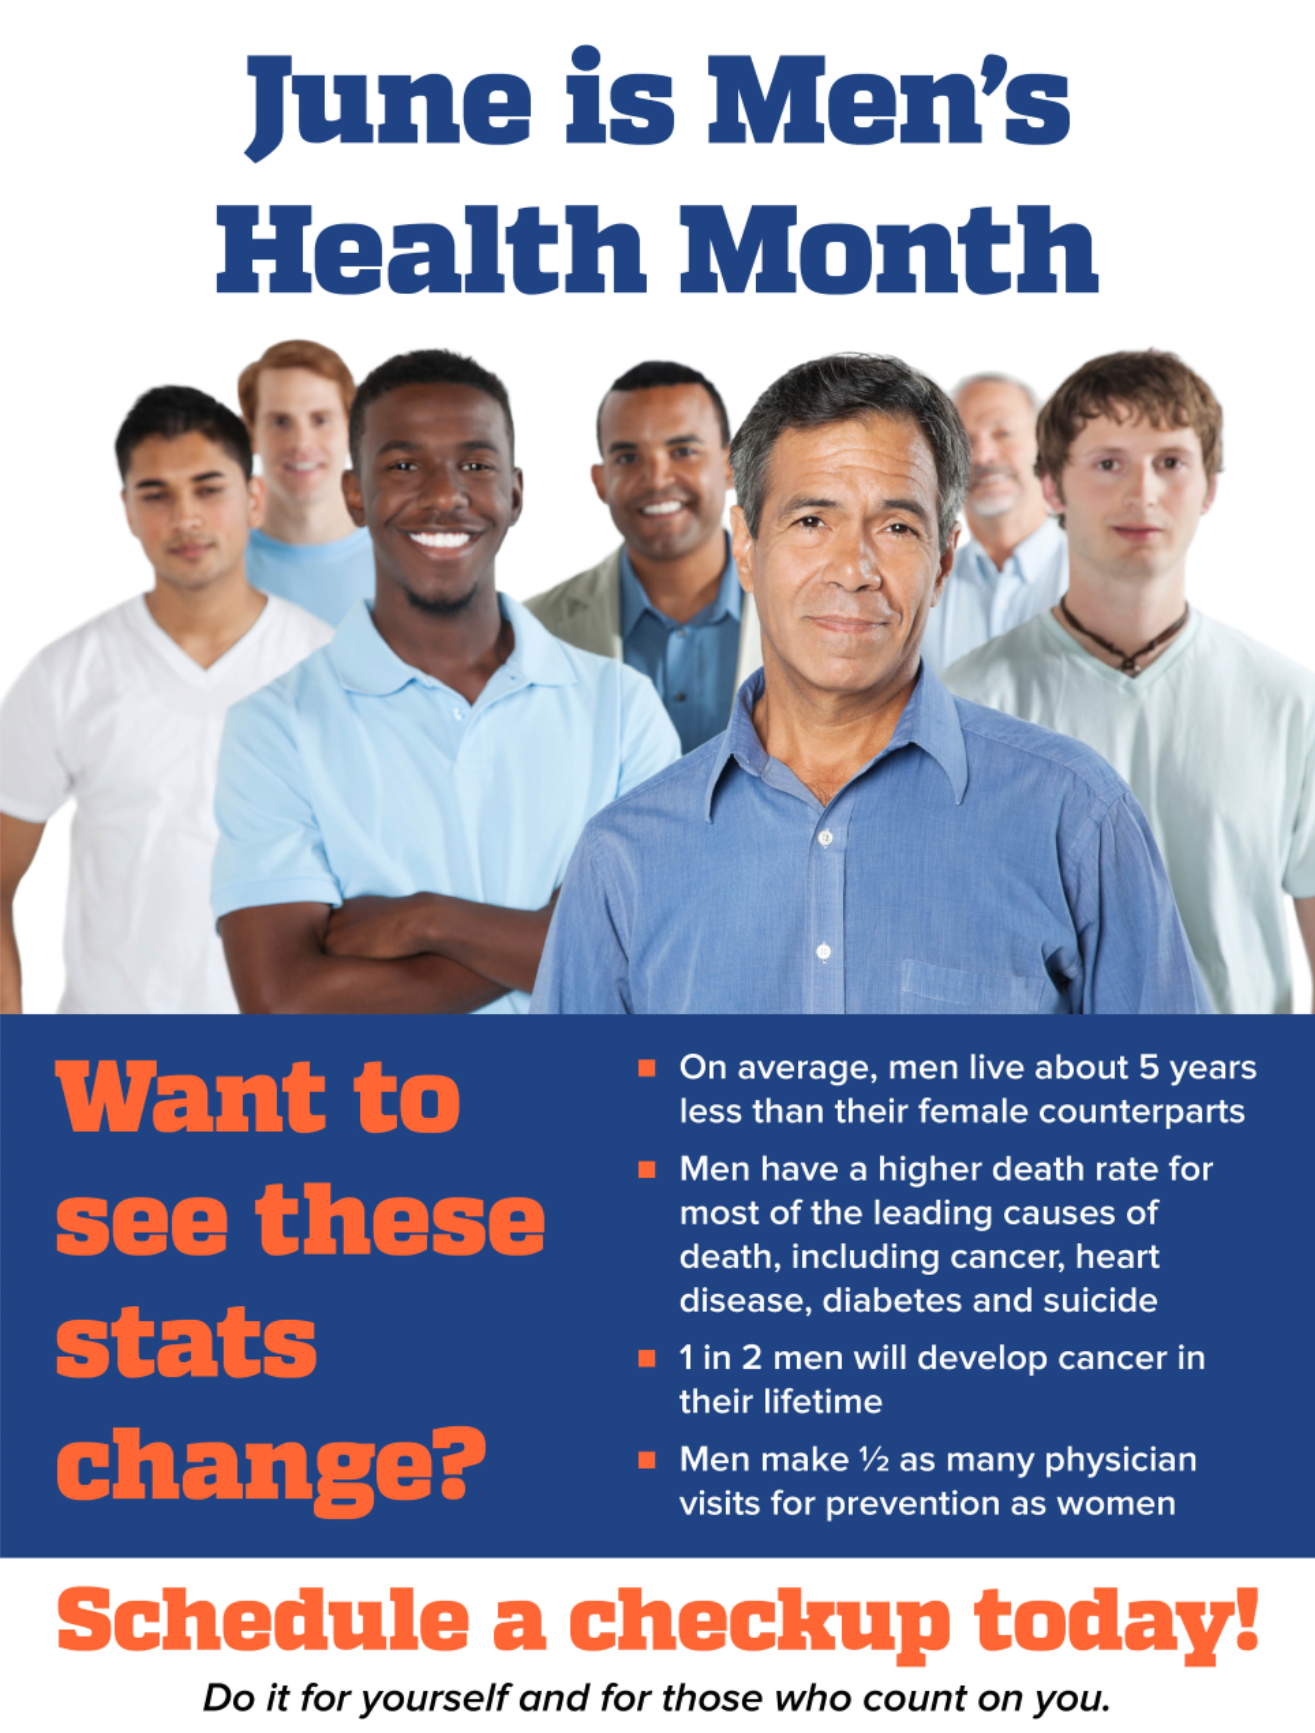 June is Men's Health Month.  To schedule your appointment, call (352) 265-8240.